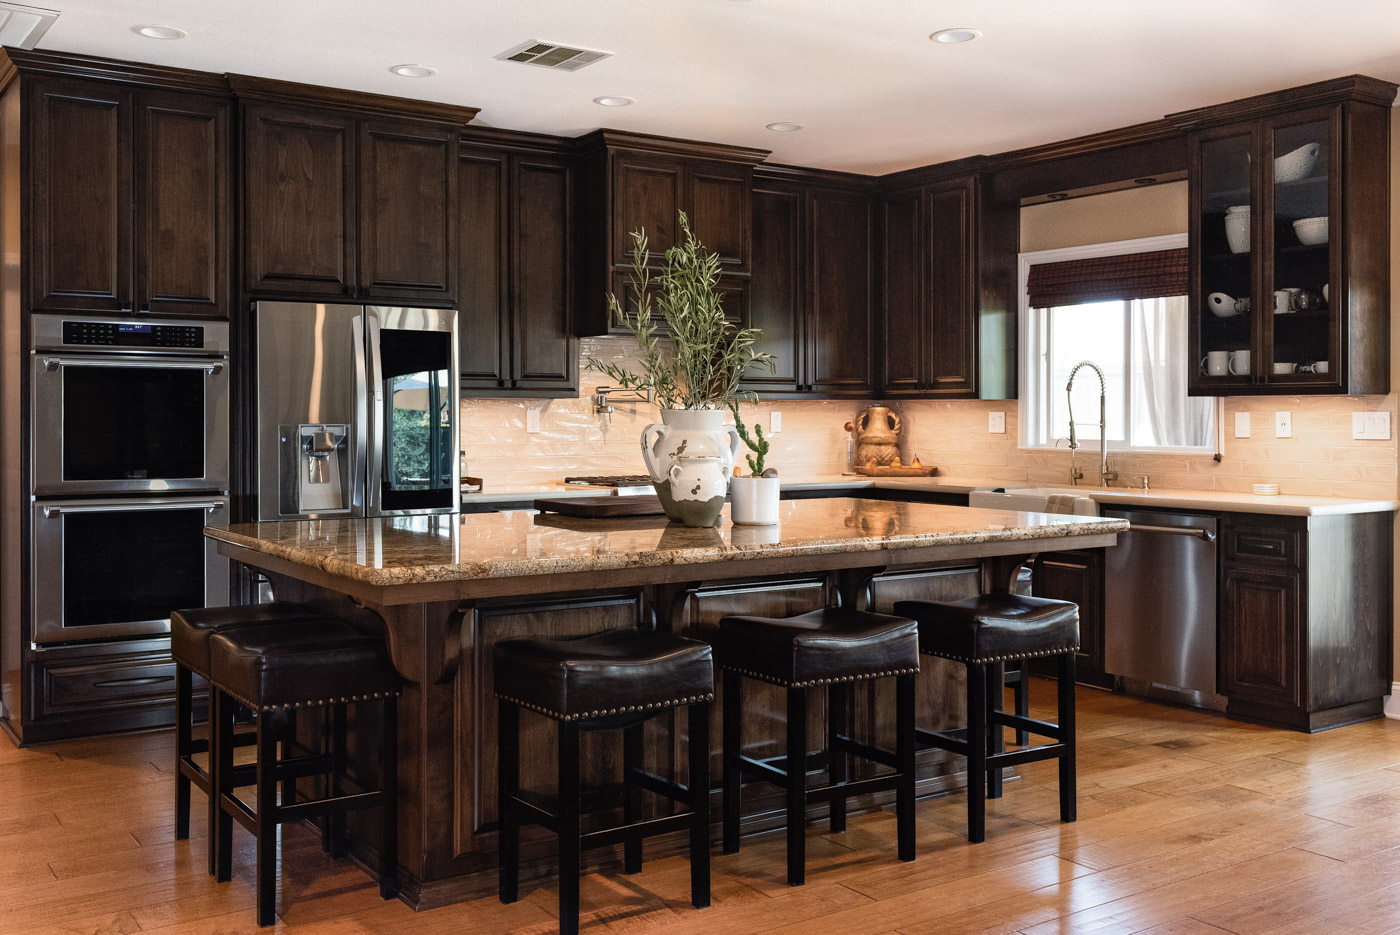 custom kitchen create a traditional mediterranean cabinets in paso robles sligh design 1 jpg